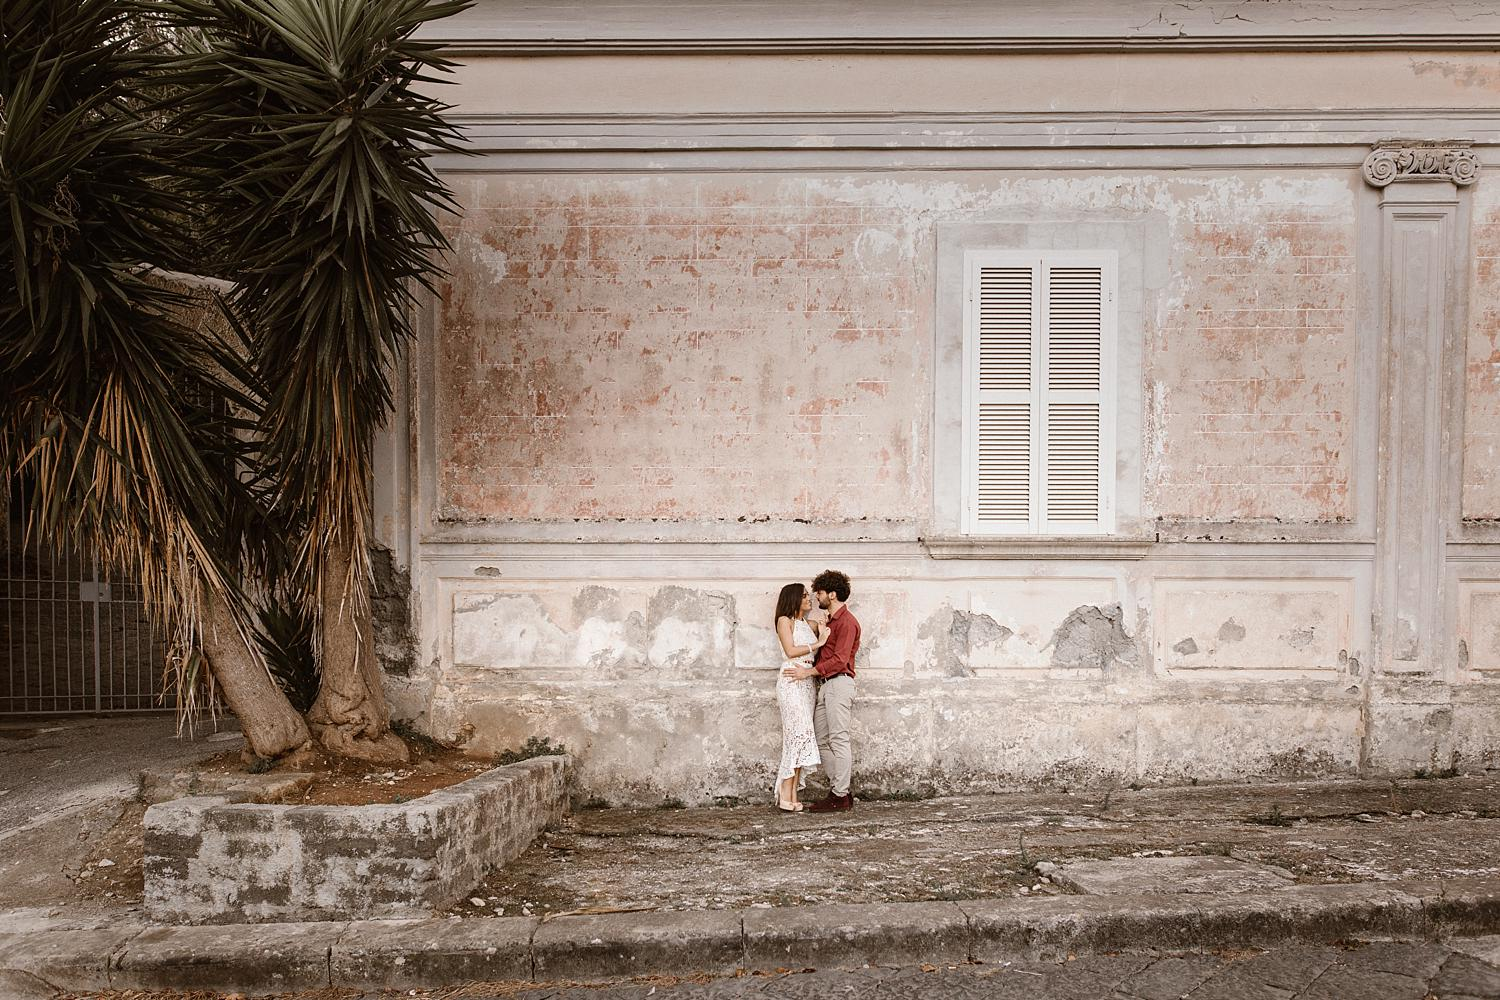 mf weddingphotographer rome 65 - Marika & Franklin - Intimate Session in Gaeta